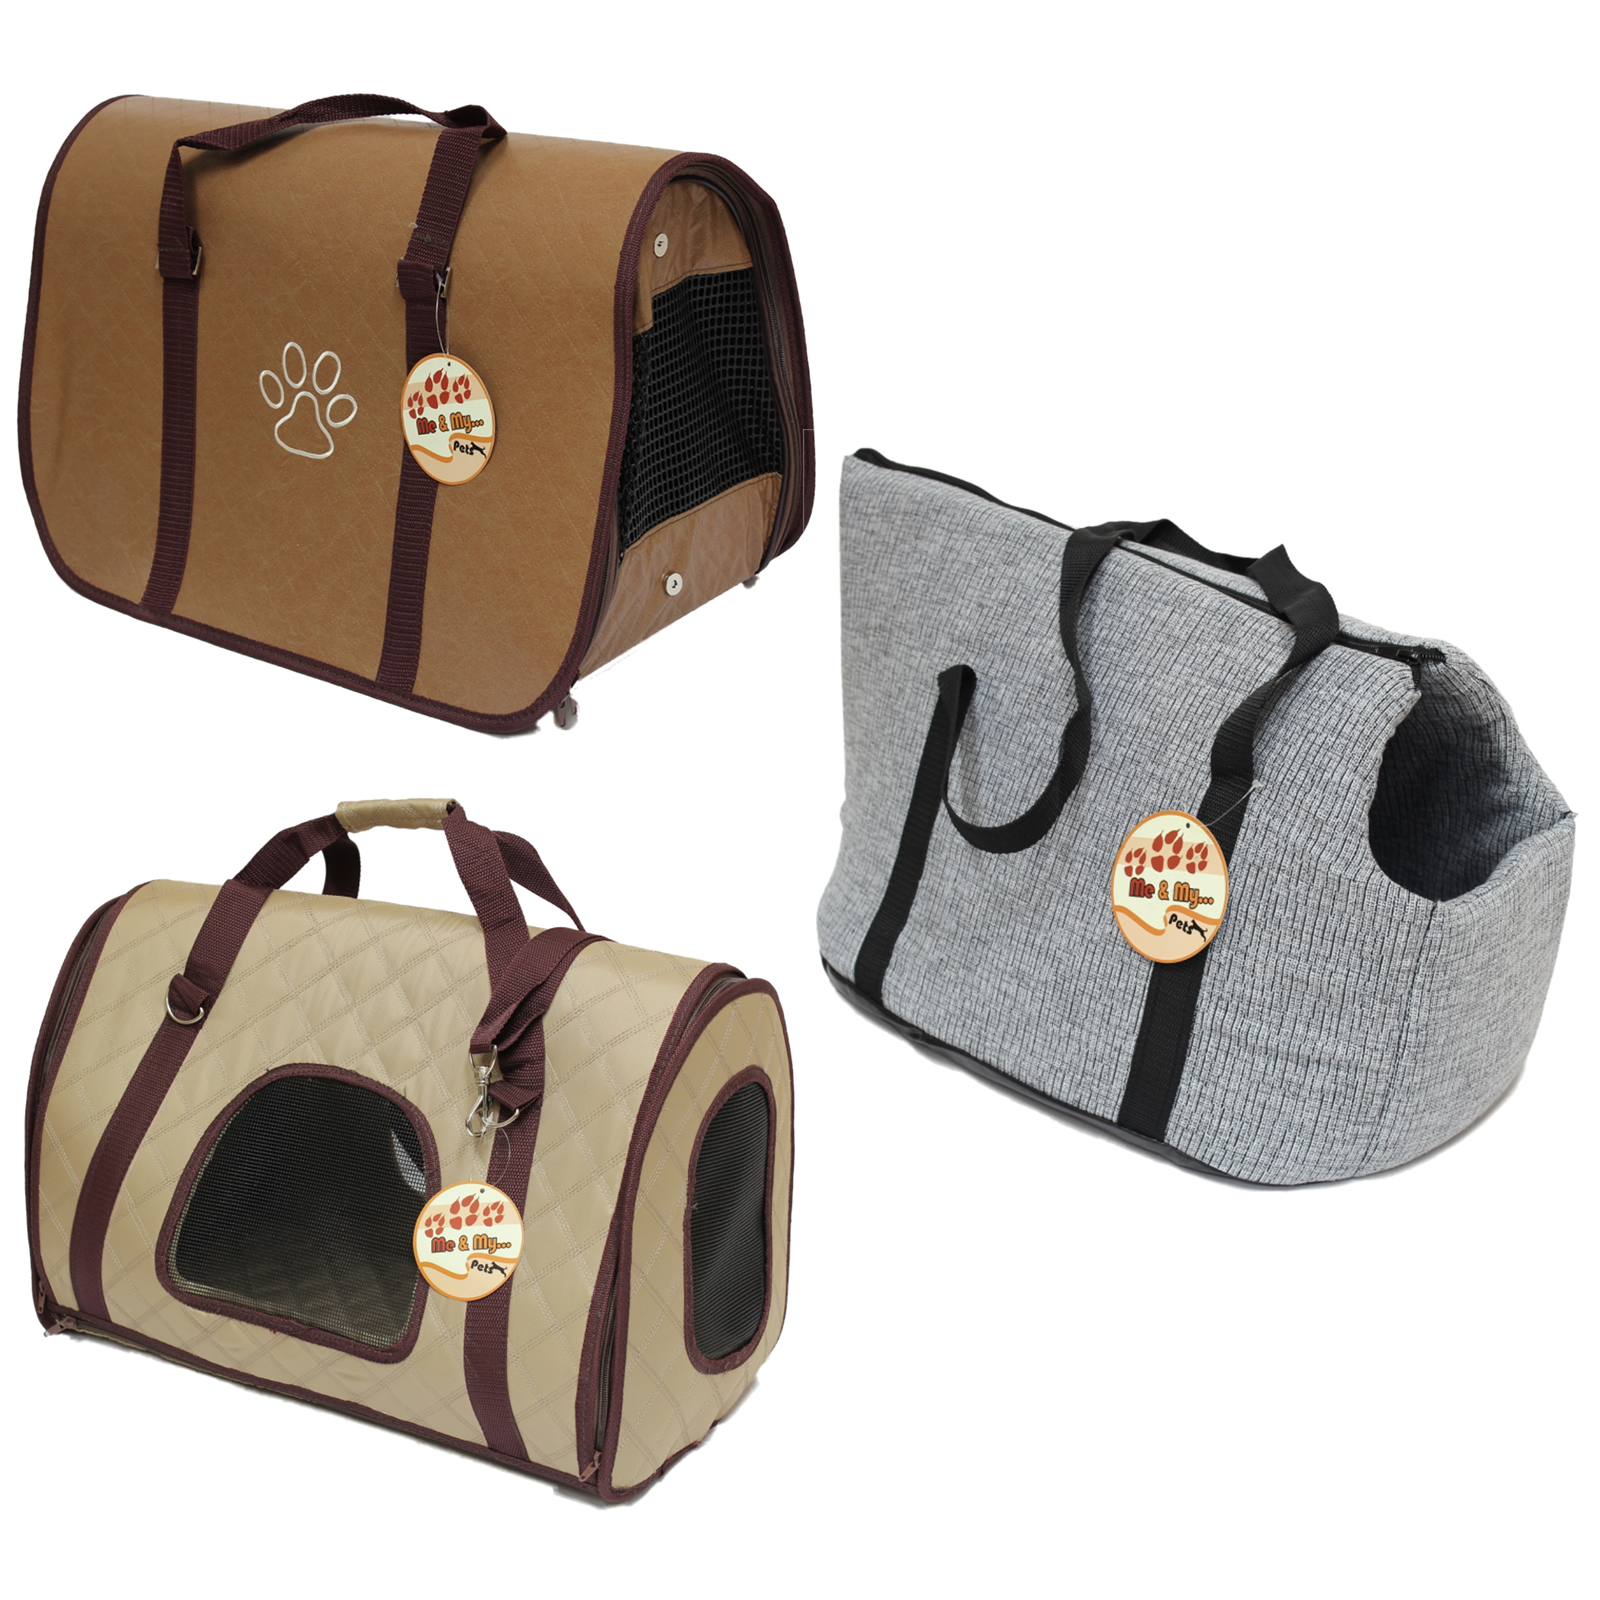 Sentinel Pet Travel Bag For Dog Puppy Cat Kitten Rabbit Carrier Cage